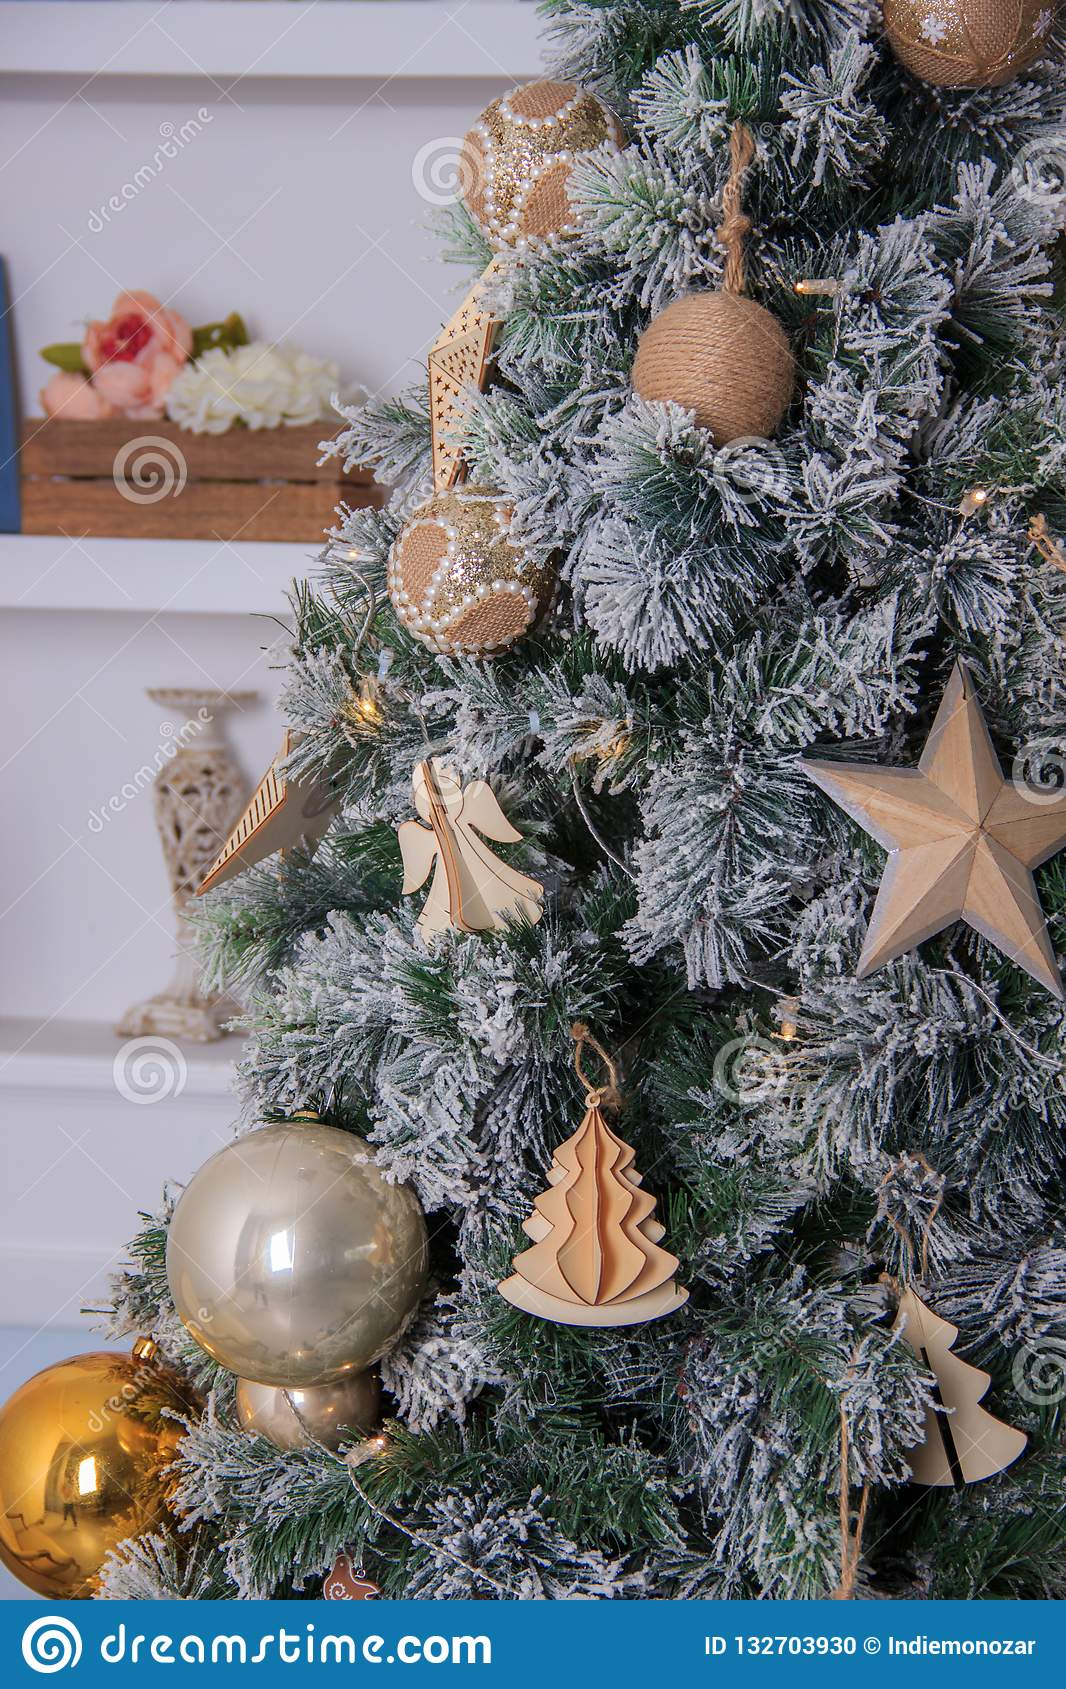 Christmas Tree Background And Christmas Decorations In The Modern Home Interior Stock Photo Image Of Celebration Bright 132703930